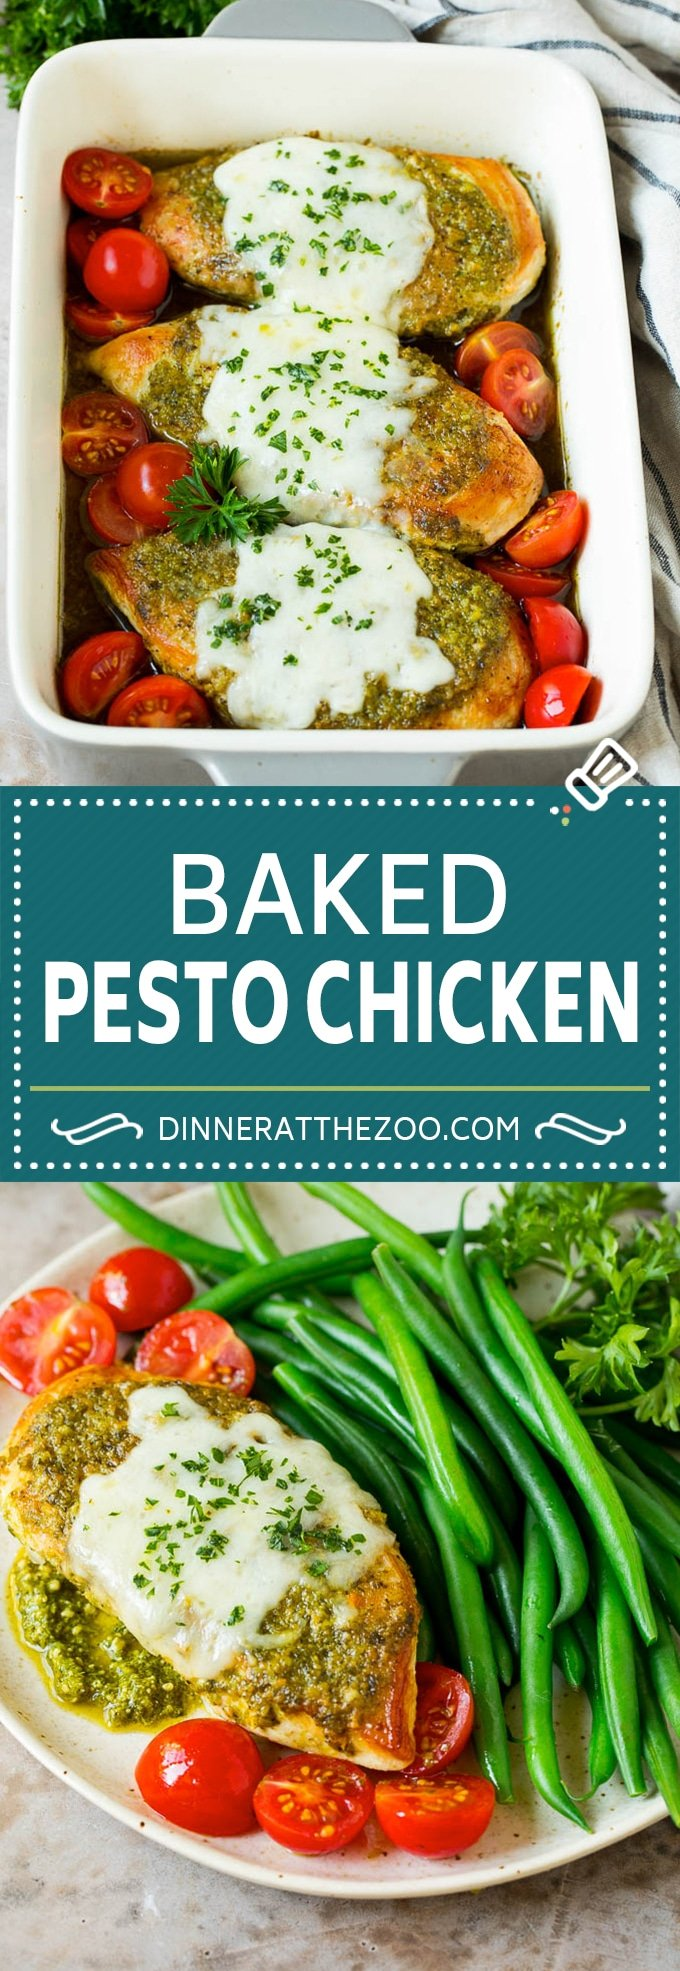 This pesto chicken recipe is seared chicken breasts topped with pesto sauce and mozzarella cheese, then baked to golden brown perfection and served with fresh tomatoes.